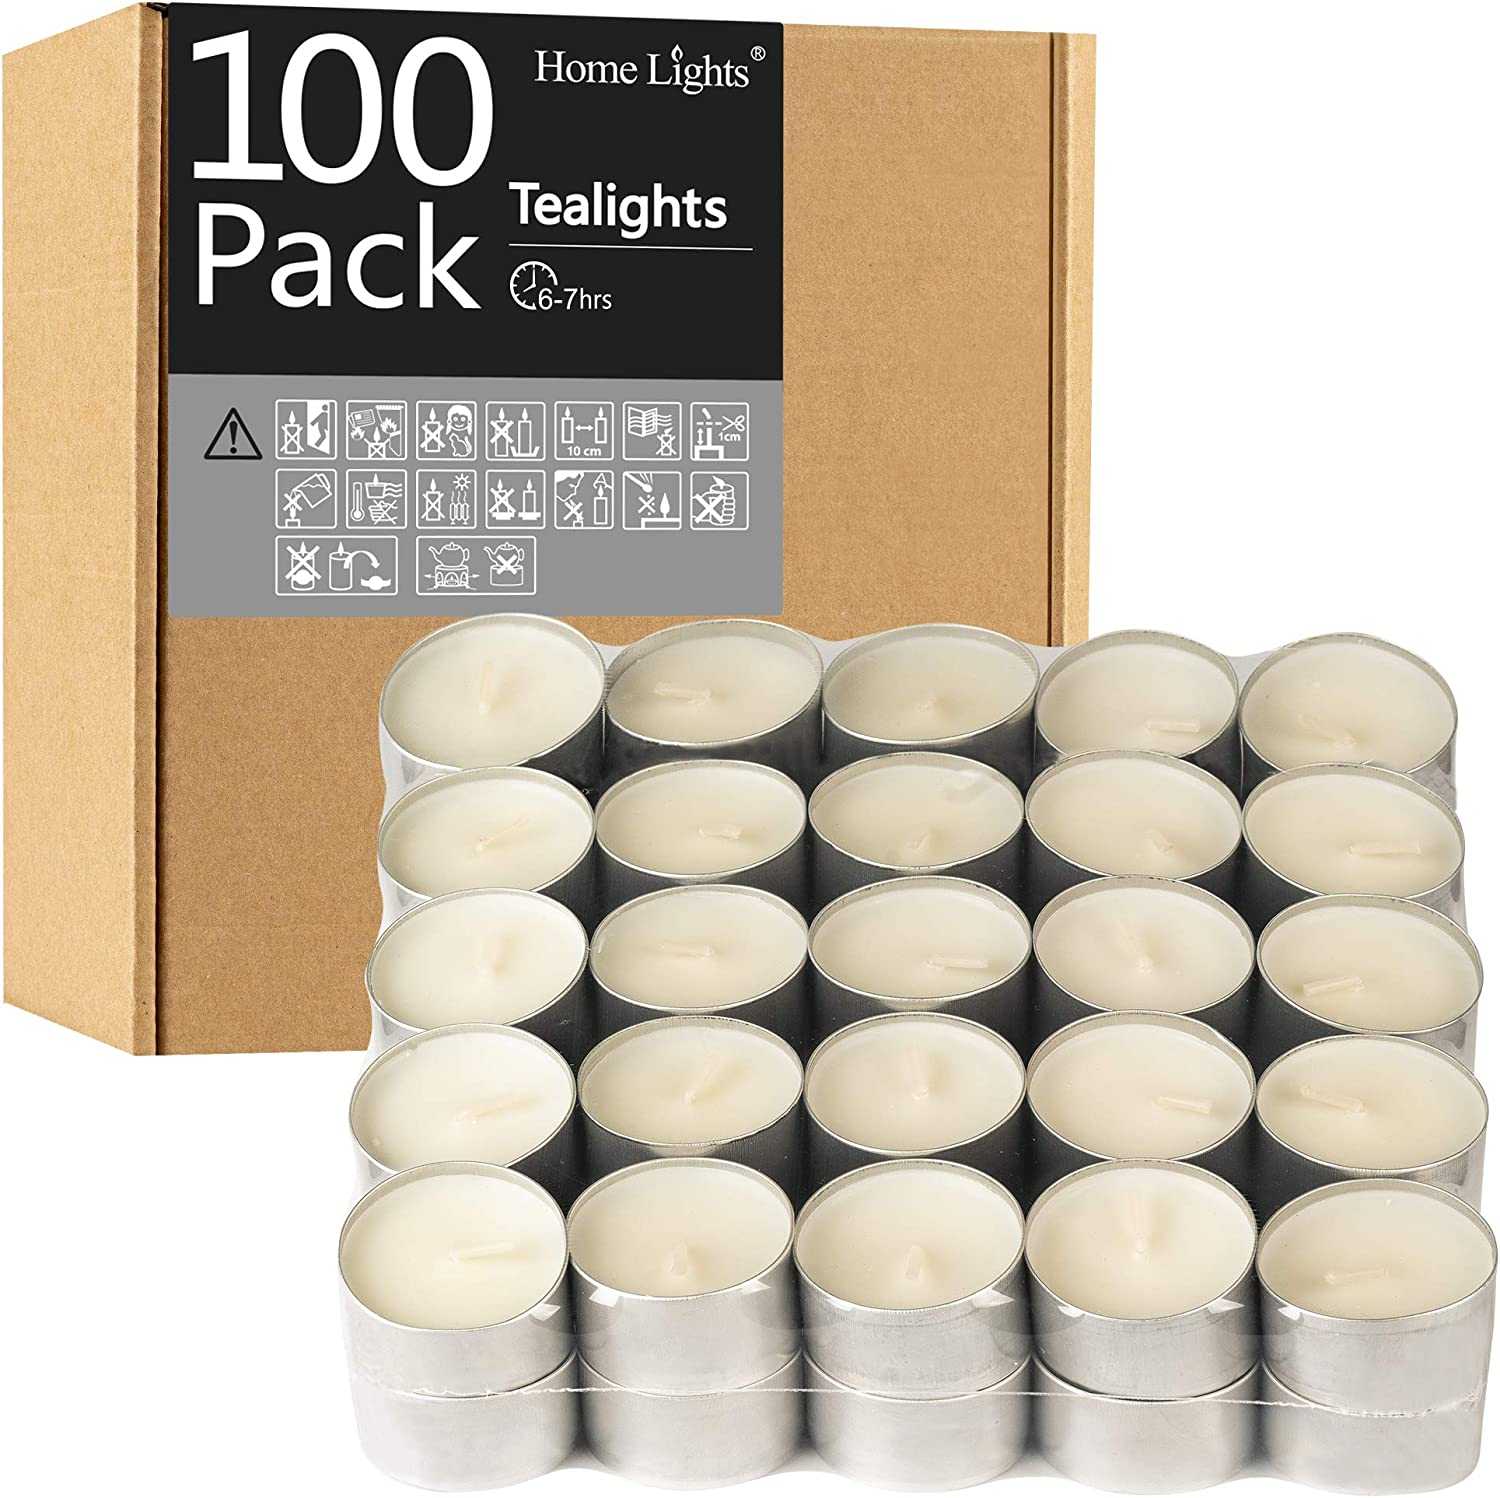 HomeLights Unscented White Tealight Candles -100 Pack, 6 to 7 Hour Burn Time Smokeless Tea Light Candles, Mini Votive Paraffin Candles with Cotton Wicks for Shabbat, Weddings, Christmas, Home Decor